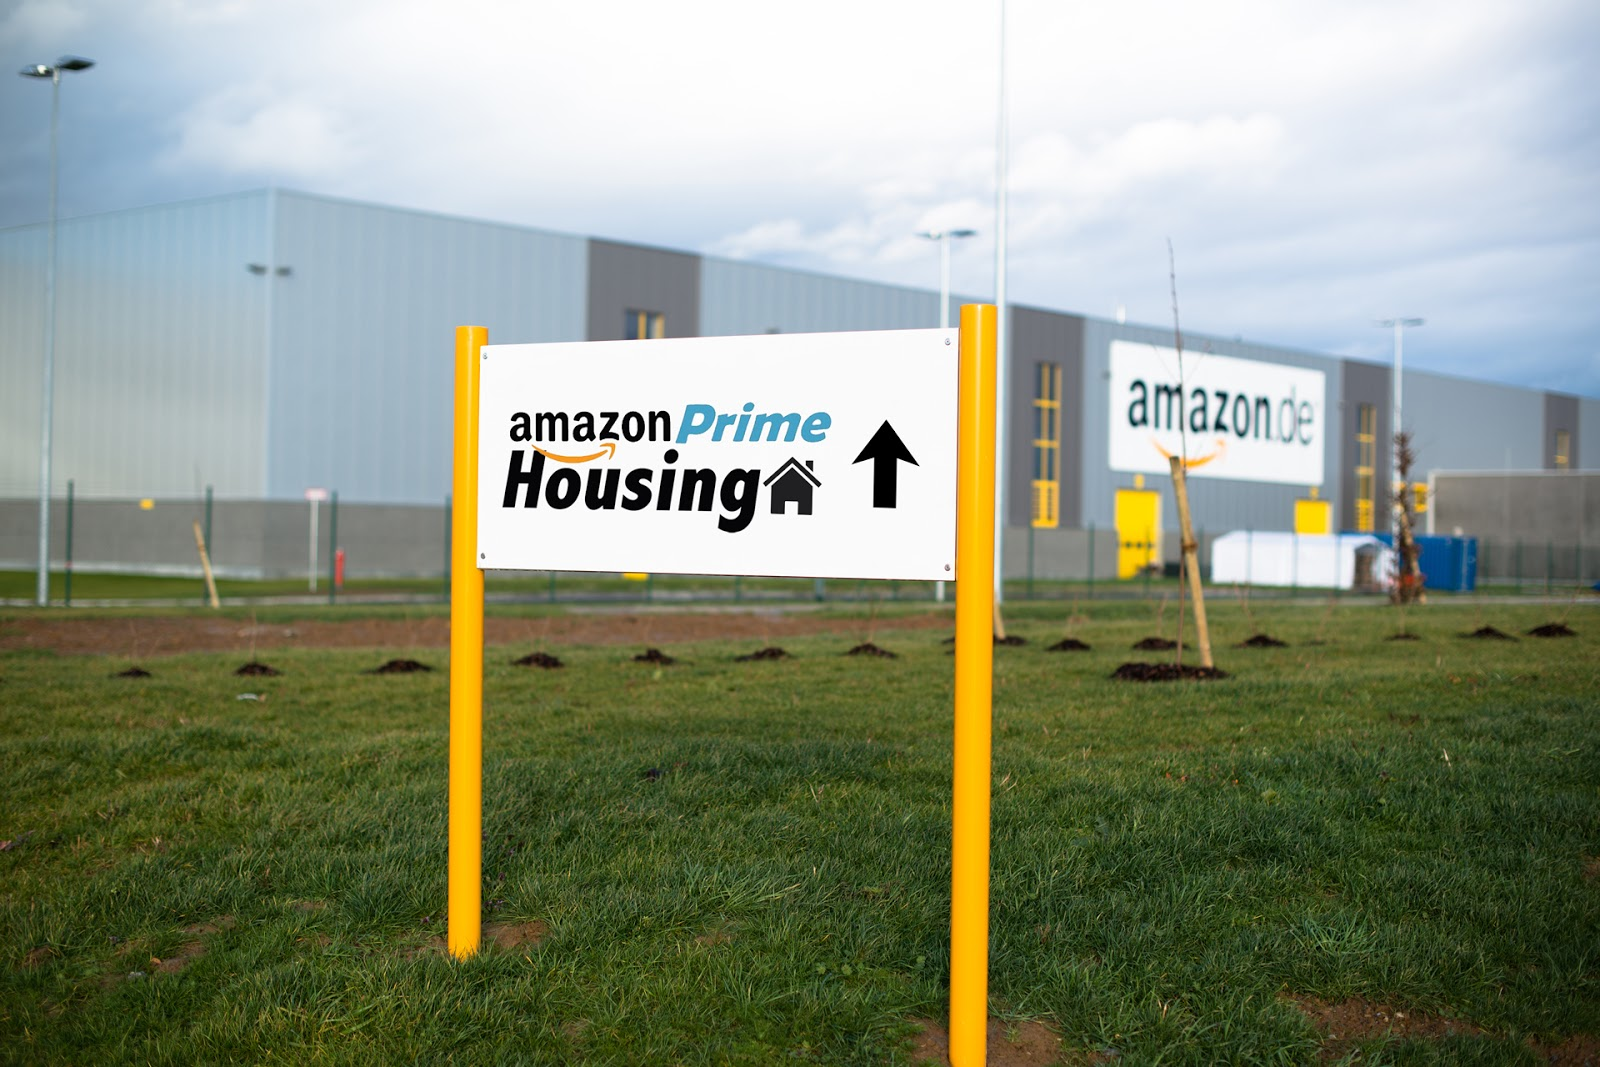 Amazon Miniküche Der Postillon Quotprime Housing Quot Neuer Amazon Service